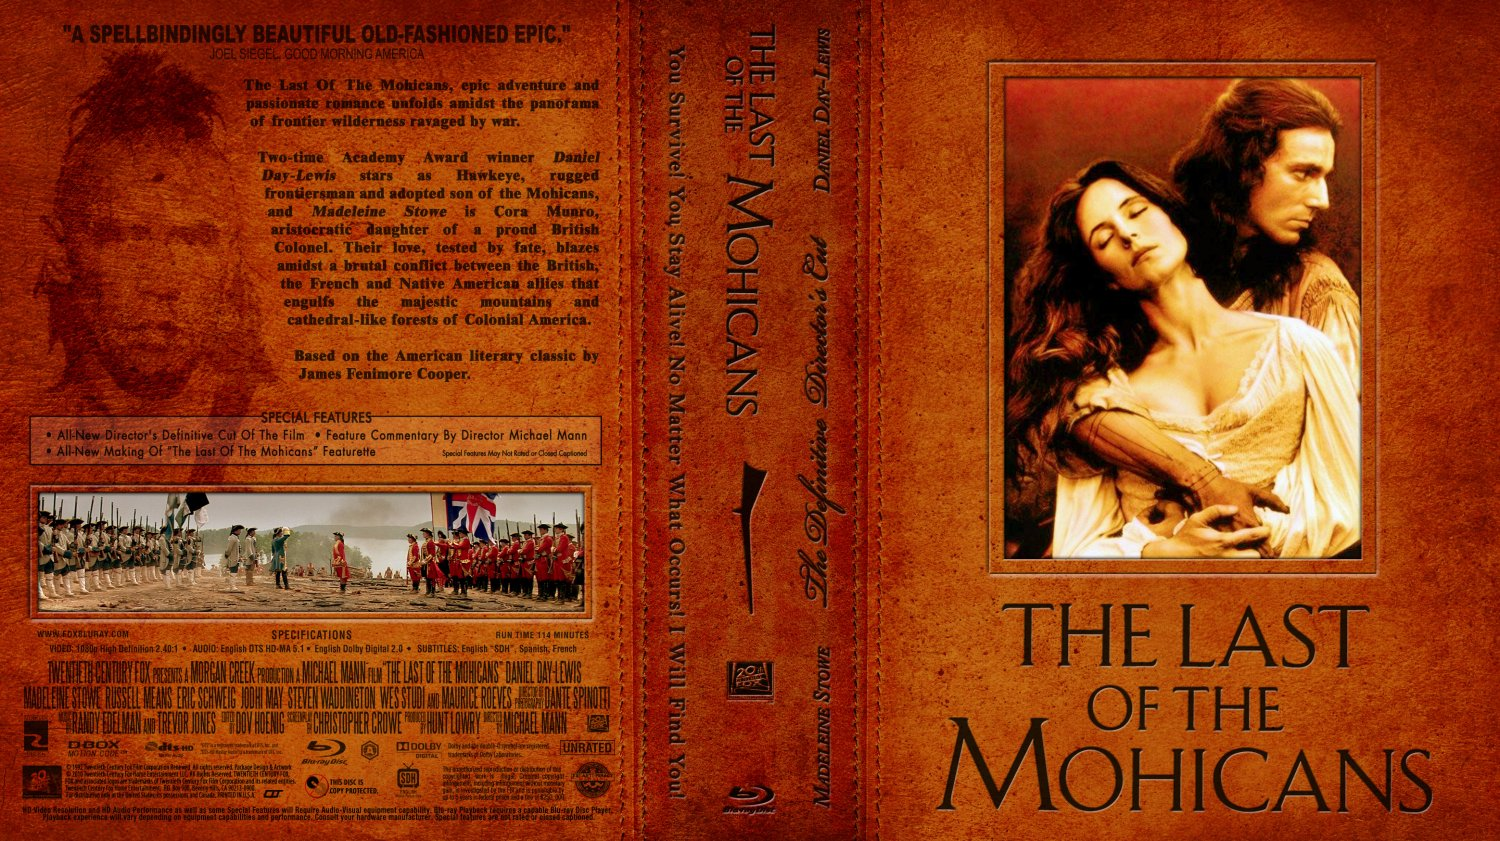 """the summary of last of the mohicans a historical epic movie """"the last of the mohicans"""" was released in 1992  the rest of the plot is based  on a novel, so there was no person named nathaniel  movie"""", but since it fits  better into other categories like historical epic or action romance."""